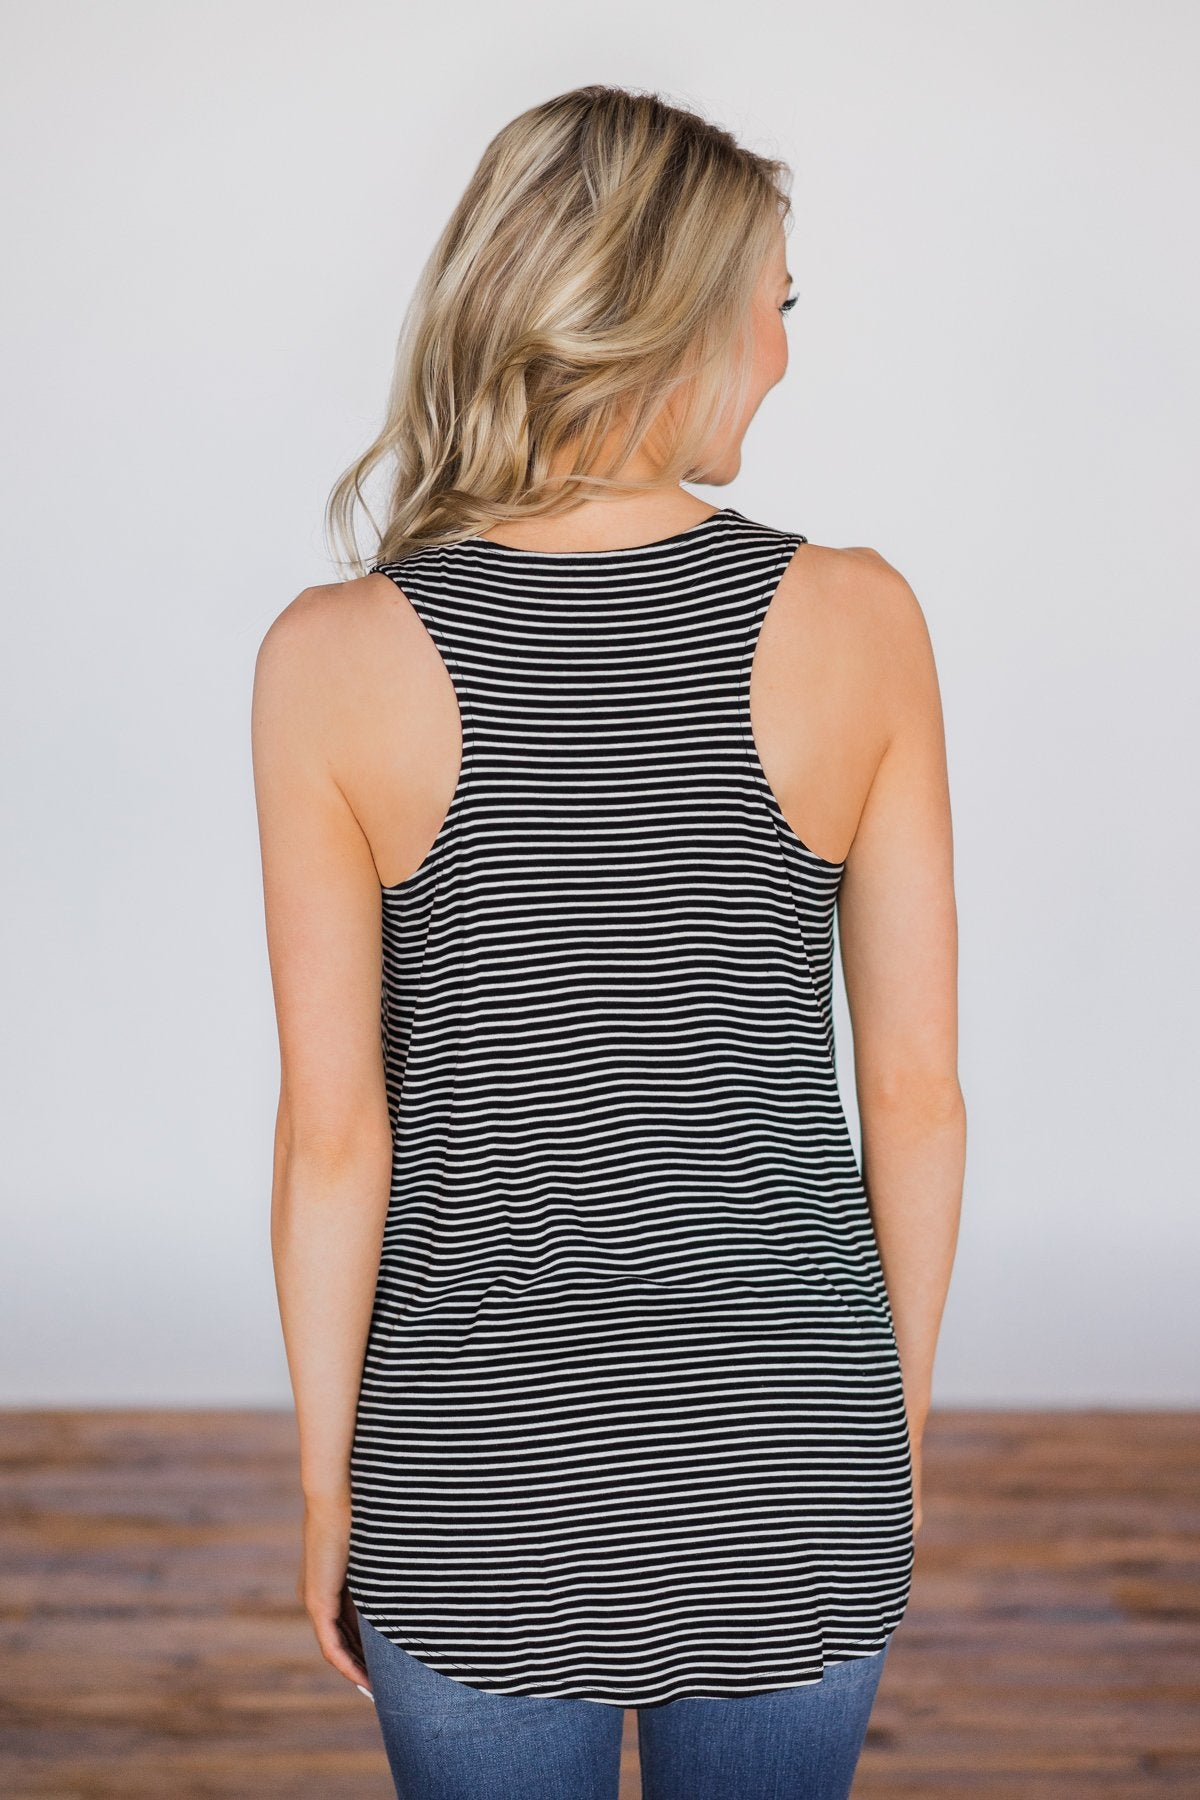 No Better Time Striped Tank Top- Black